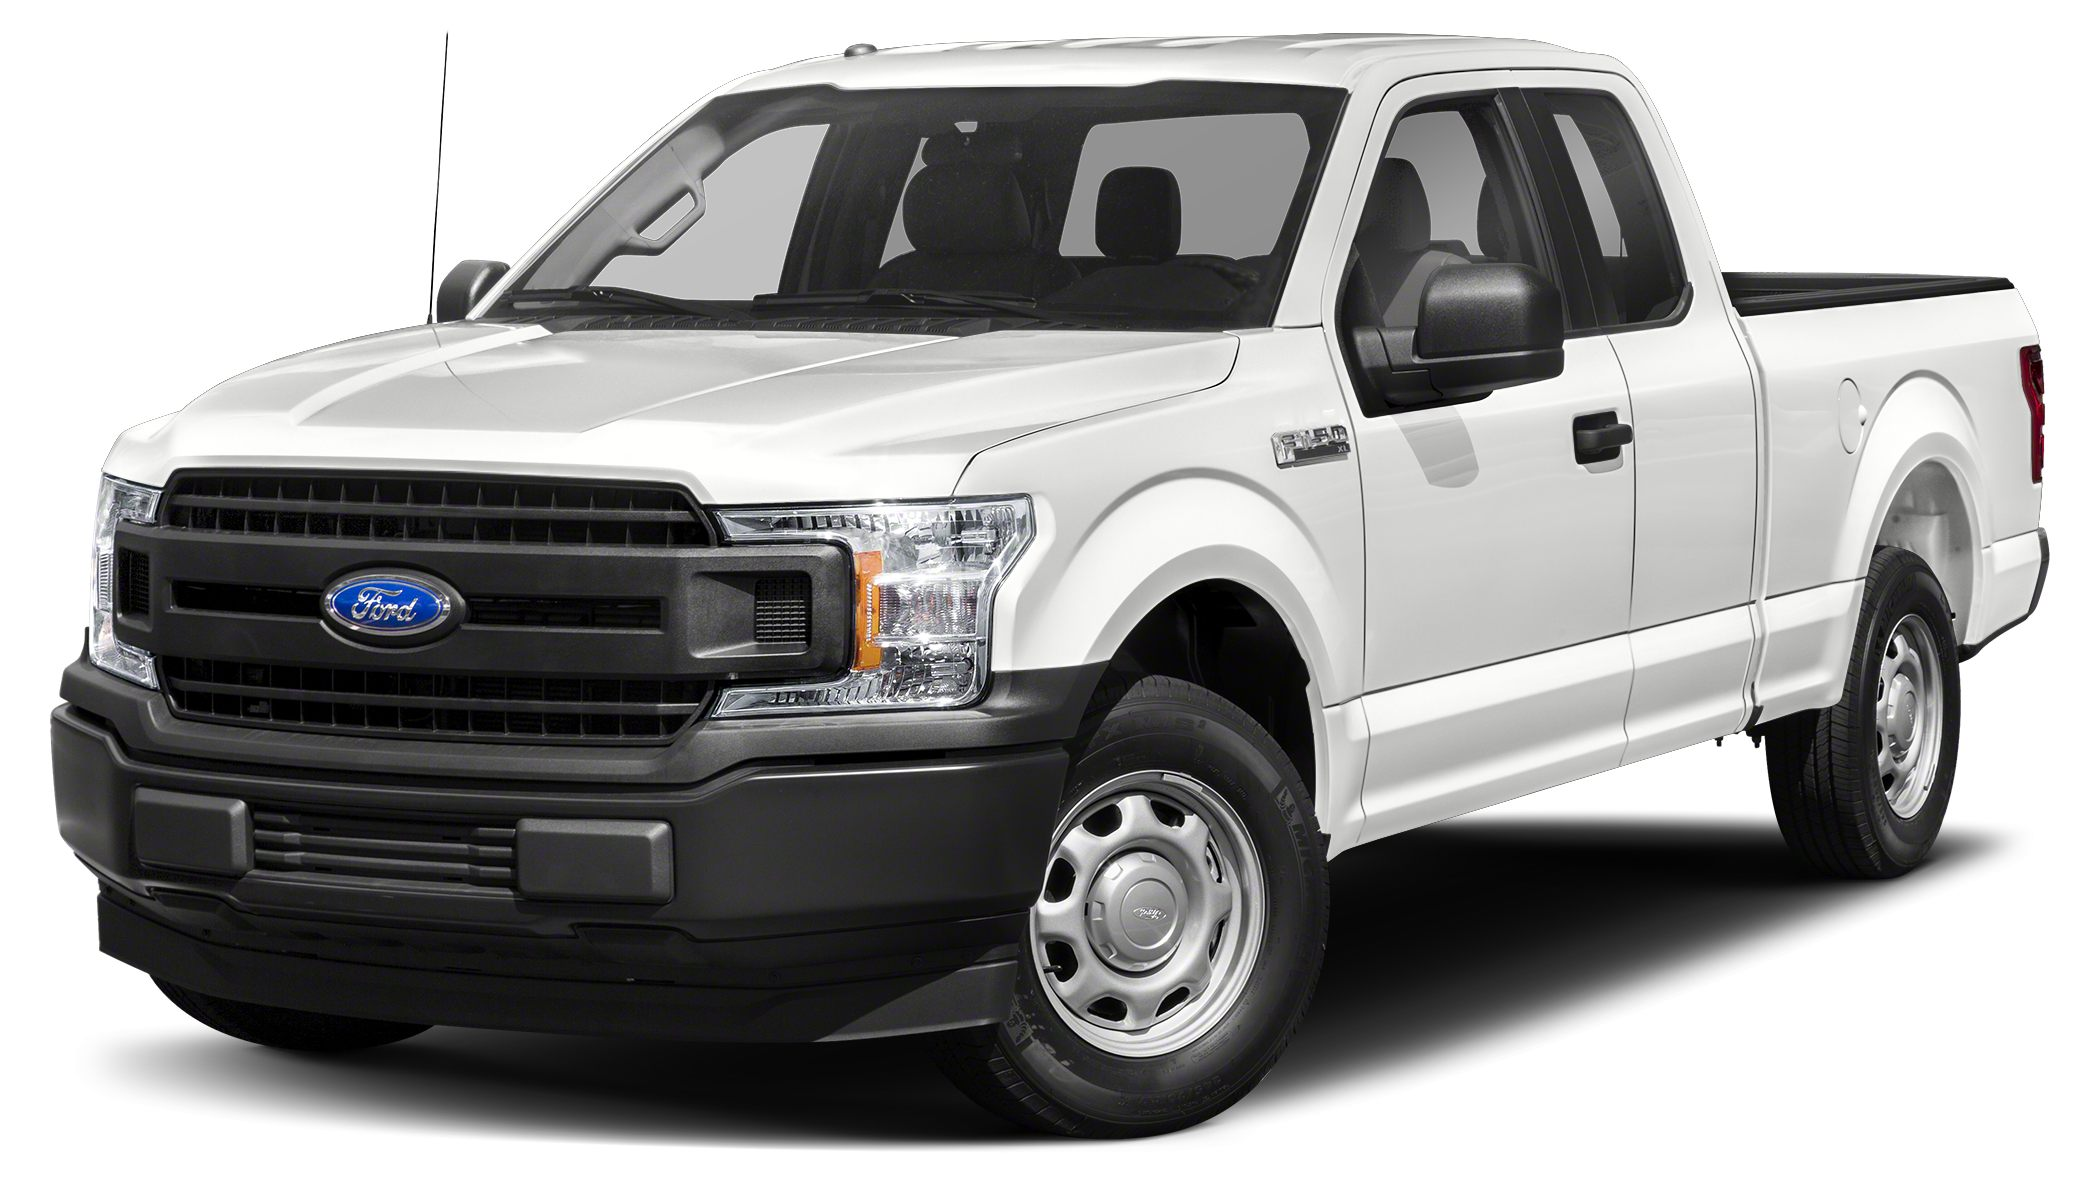 2018 Ford F-150 SC The 2018 F-150 body is up to 700 lbs lighter than the previous generation ma